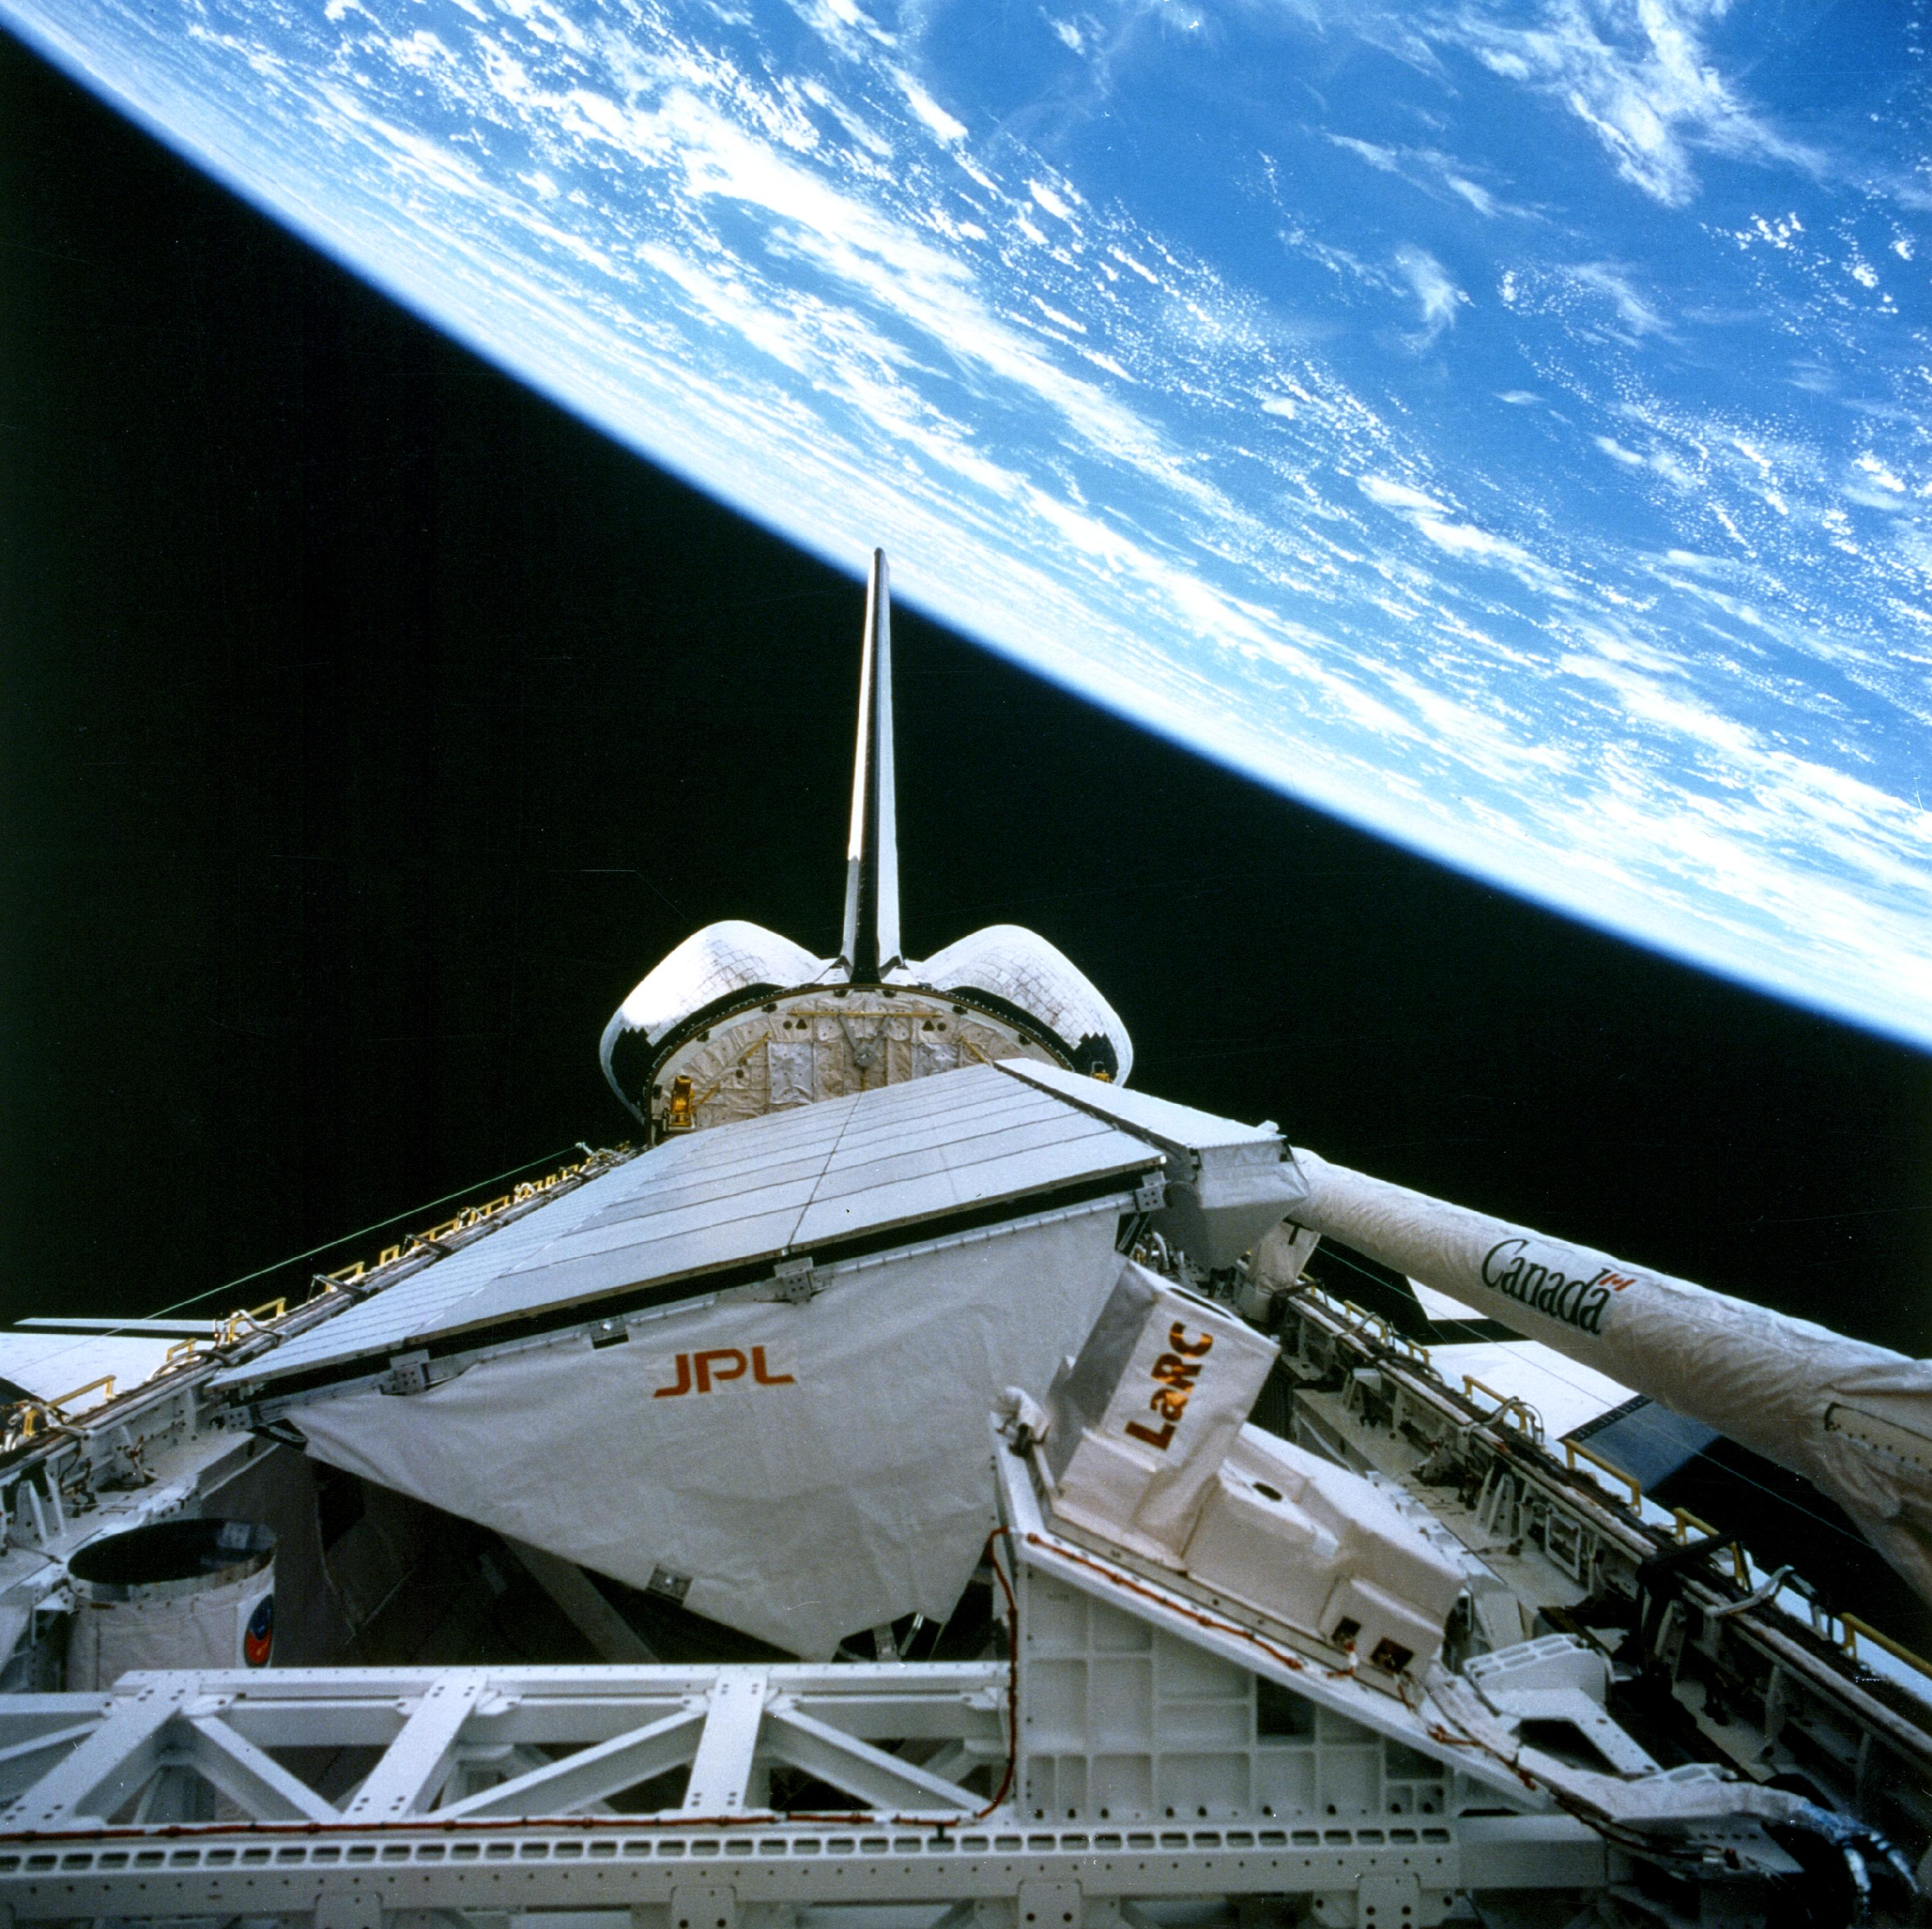 space shuttle endeavour orbiting - photo #15